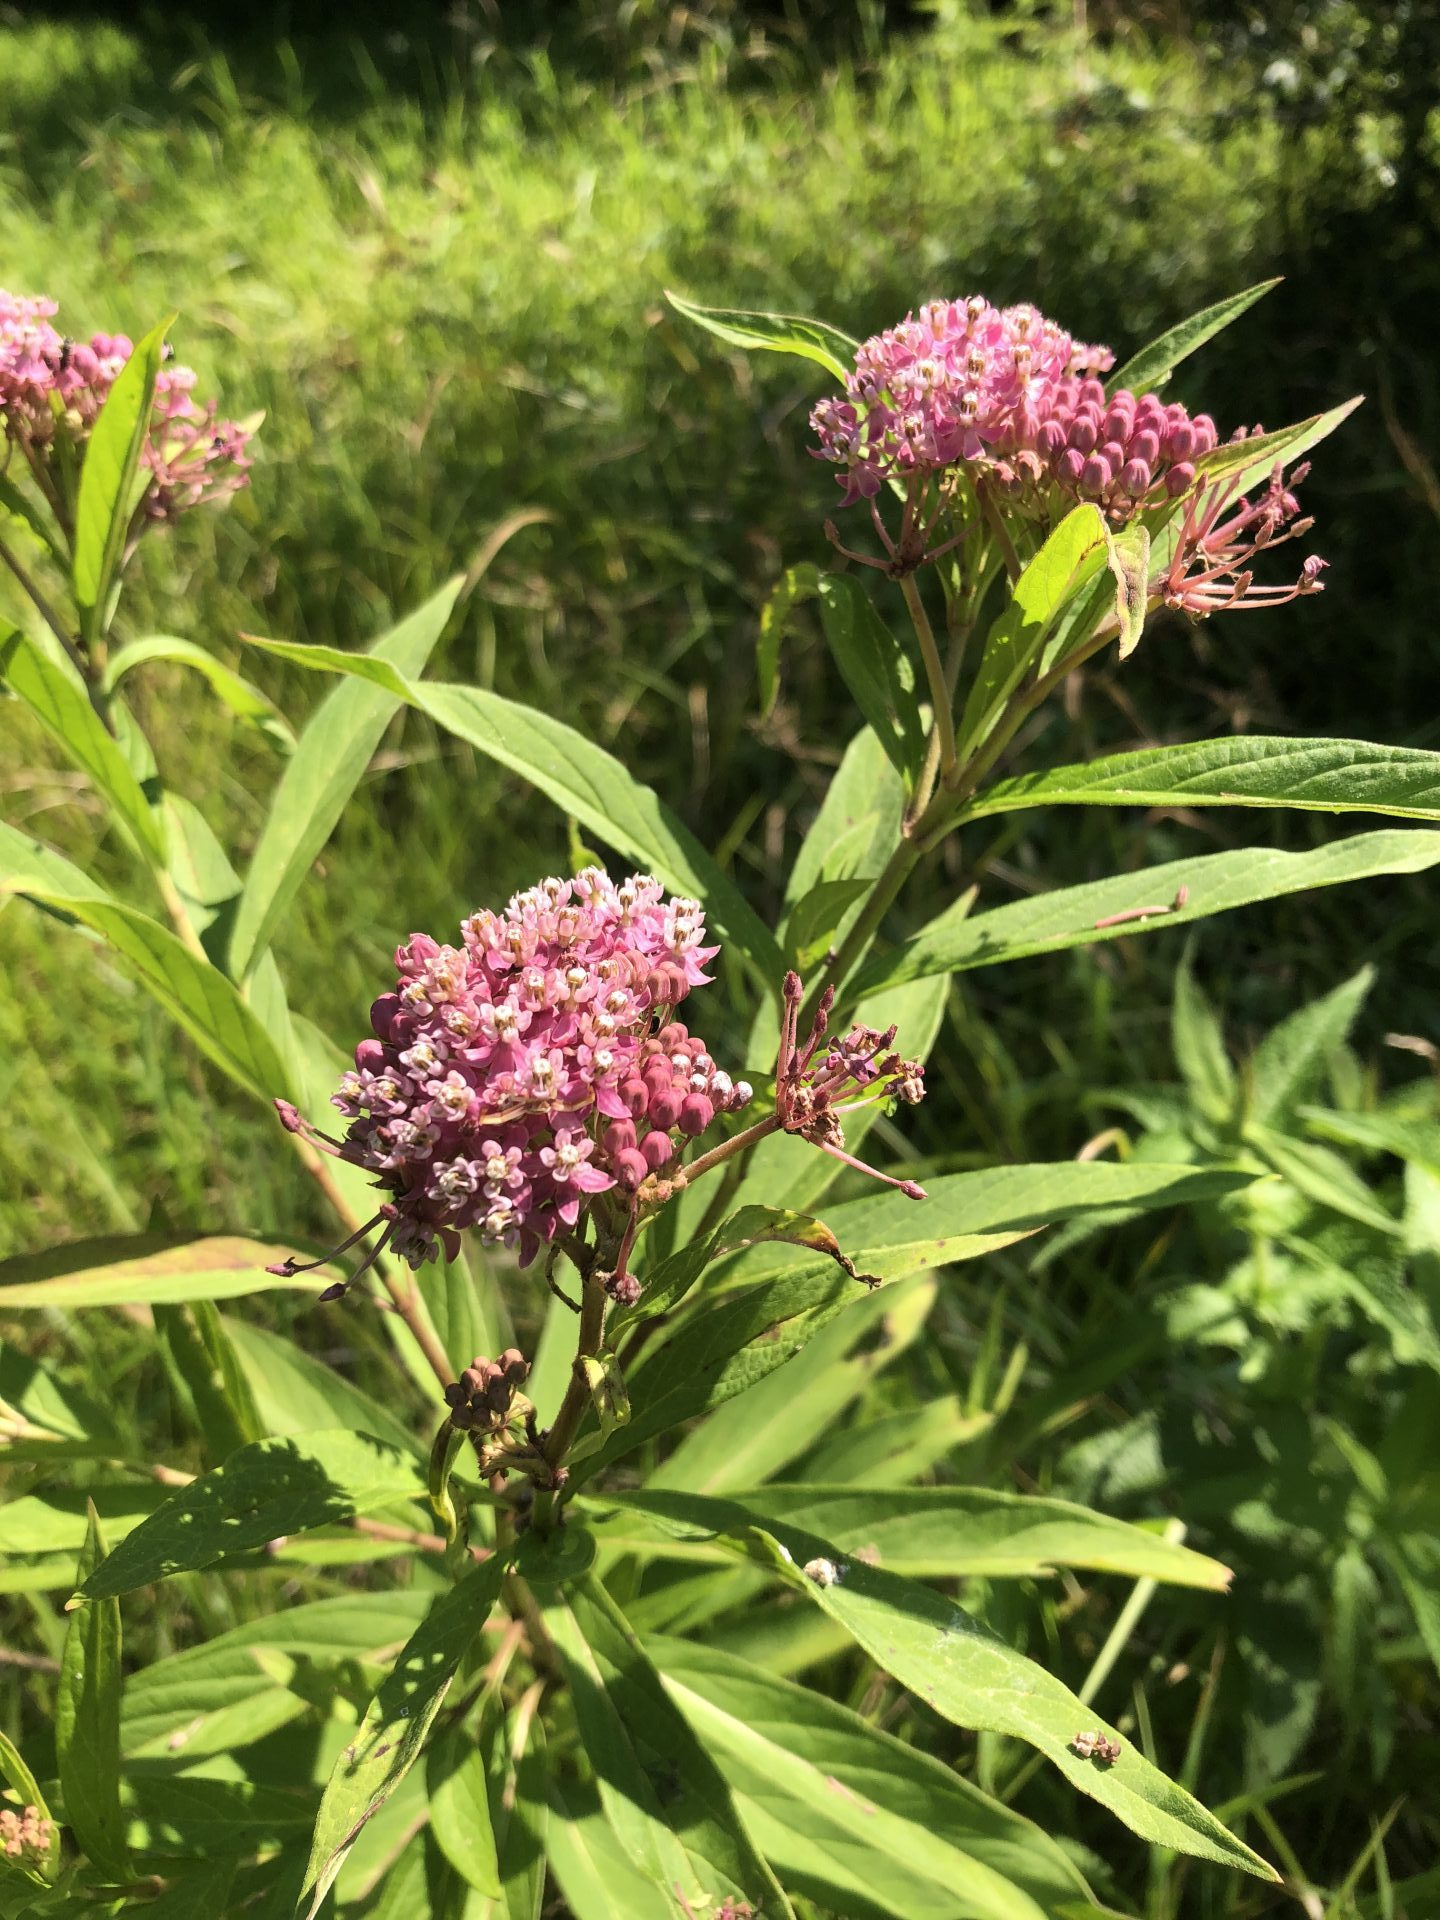 Swamp Milkweed at God's Country. Photo courtesy of Tim Pohlar